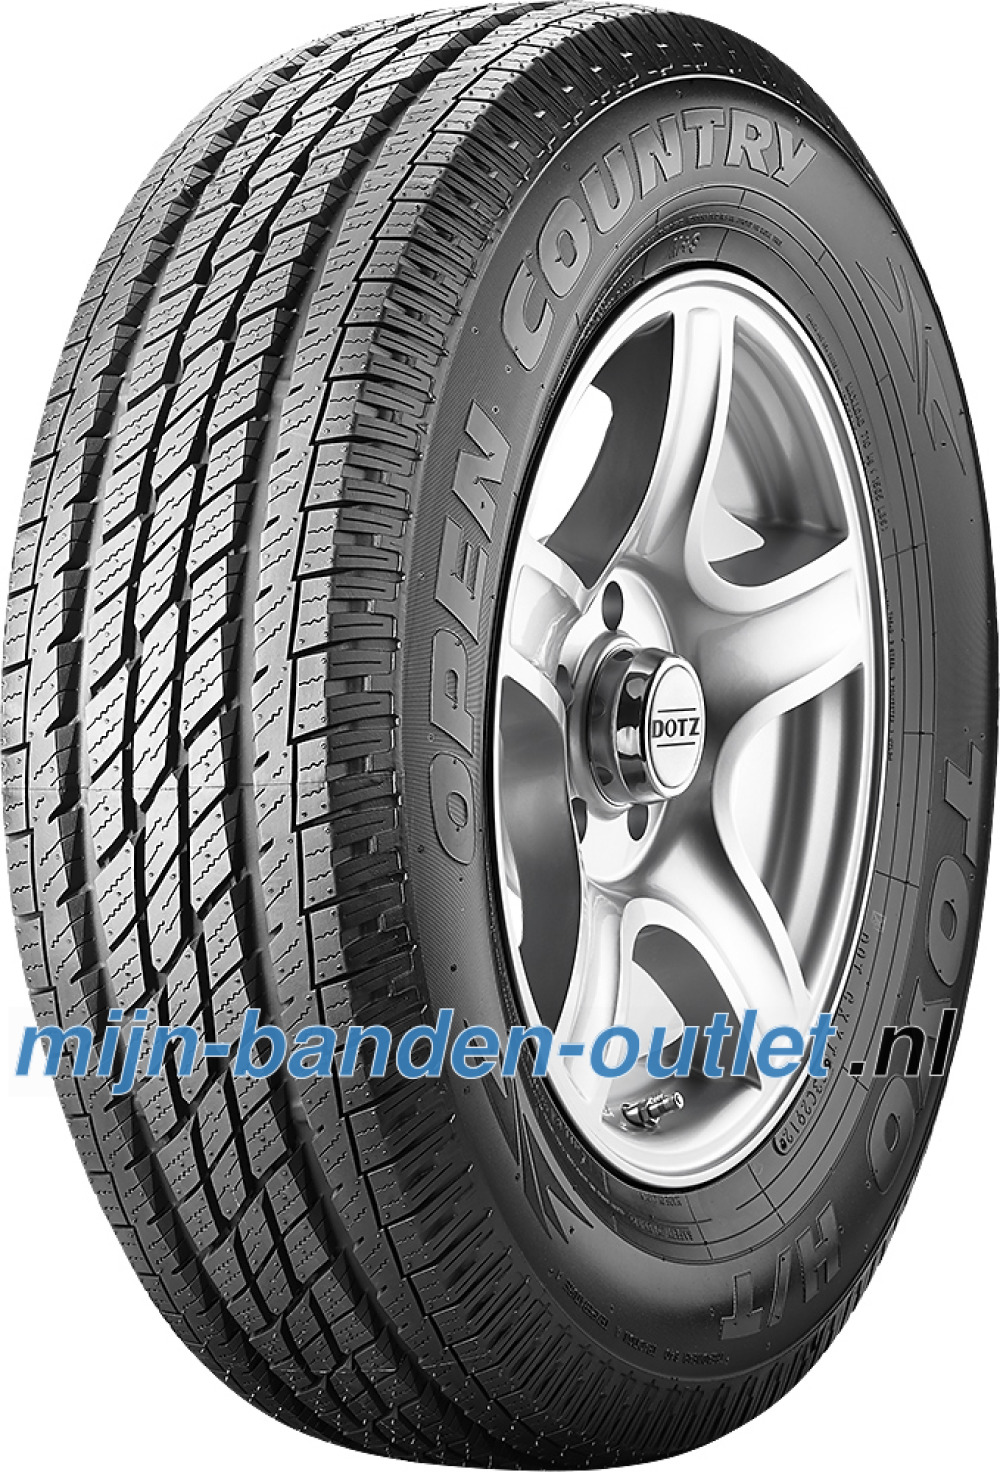 Toyo Open Country H/T ( LT215/85 R16 115/112S 10PR )